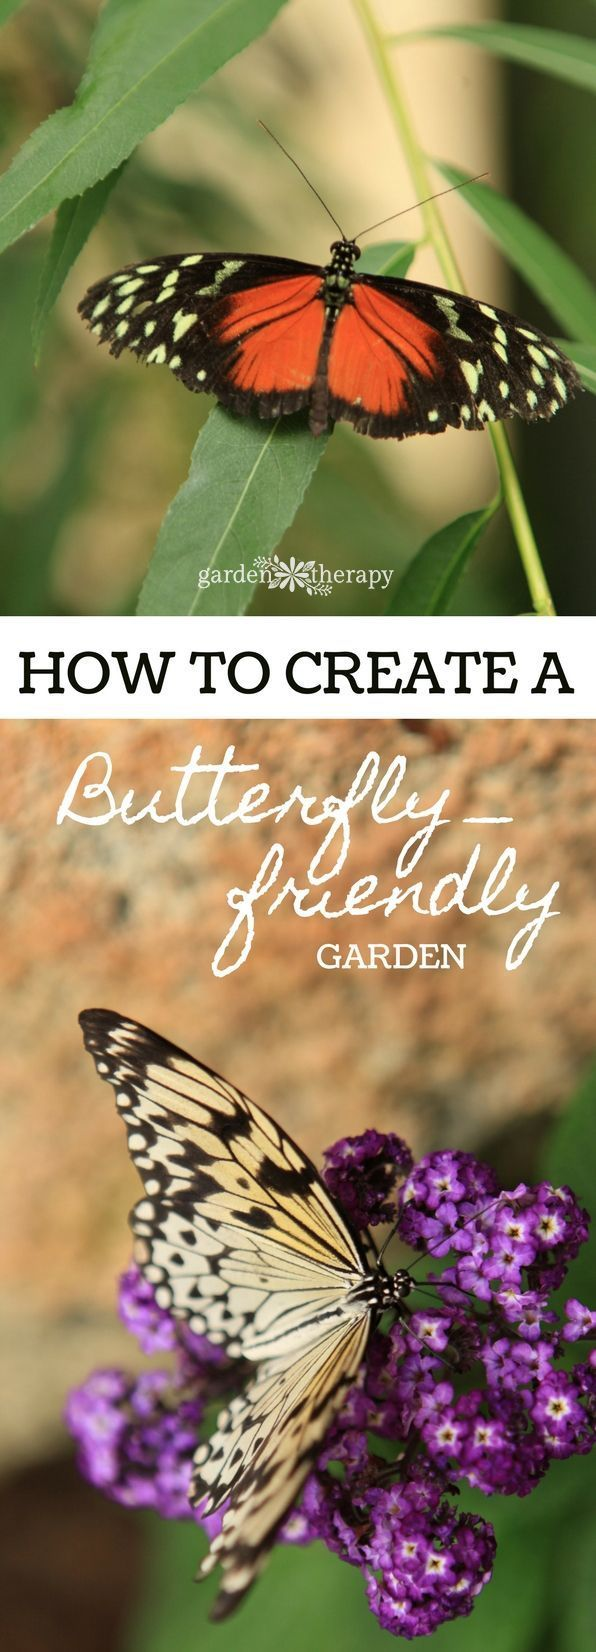 Pretty Pollinators with an Irresistible Butterfly Garden Everything you need to know to create a butterfly gardenEverything you need to know to create a butterfly garden